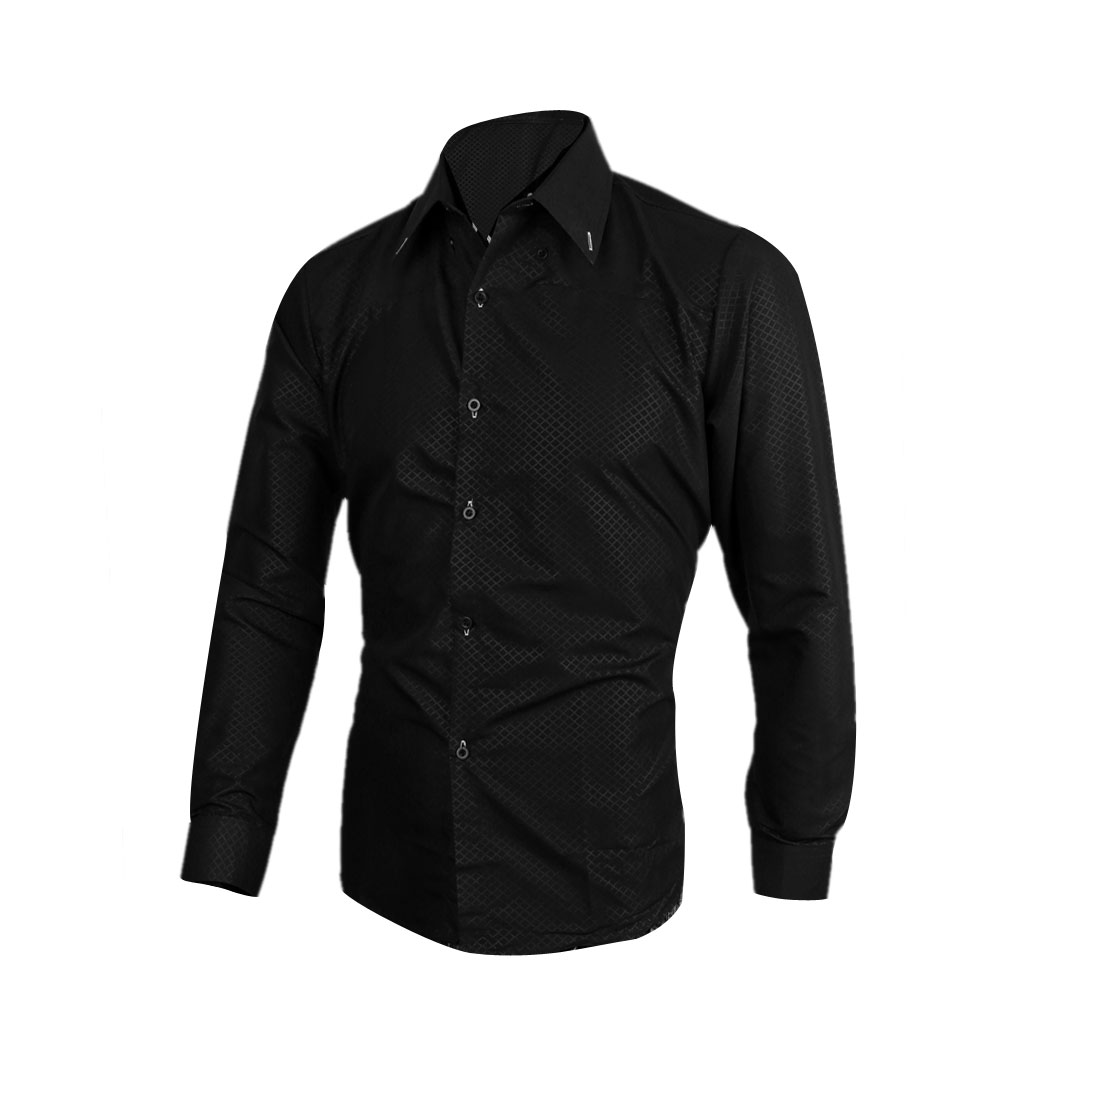 Men Buttoned Cuff Point Collar Plaids Long-sleeved Shirt Black M